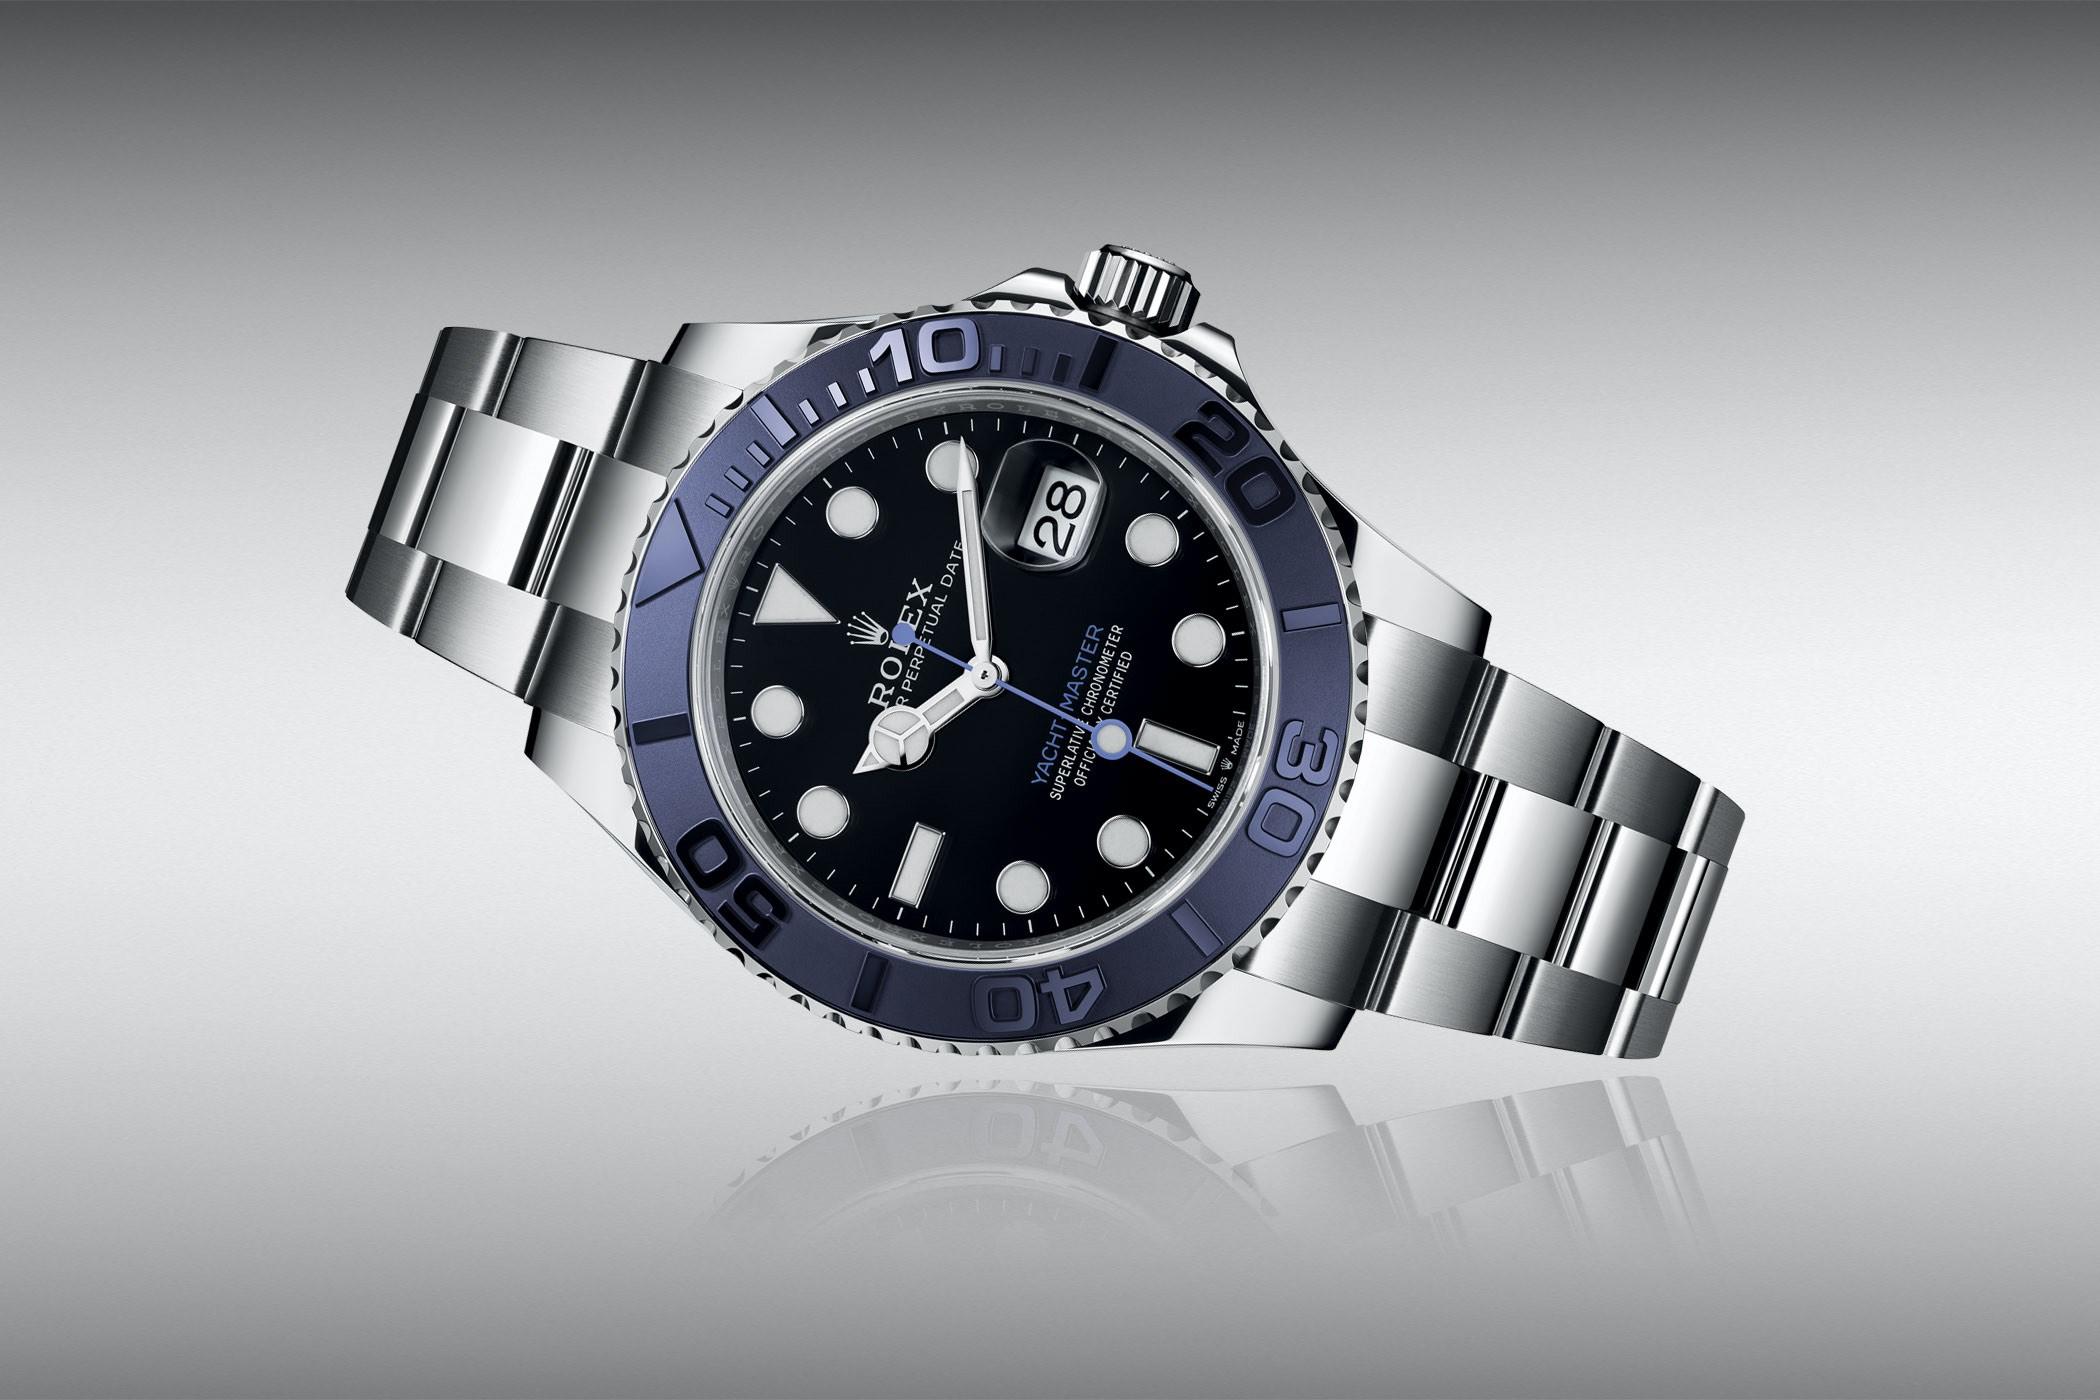 Rolex Yacht-Master 42 Steel - 226600LB - Rolex Baselworld 2020 - Rolex 2020 Predictions